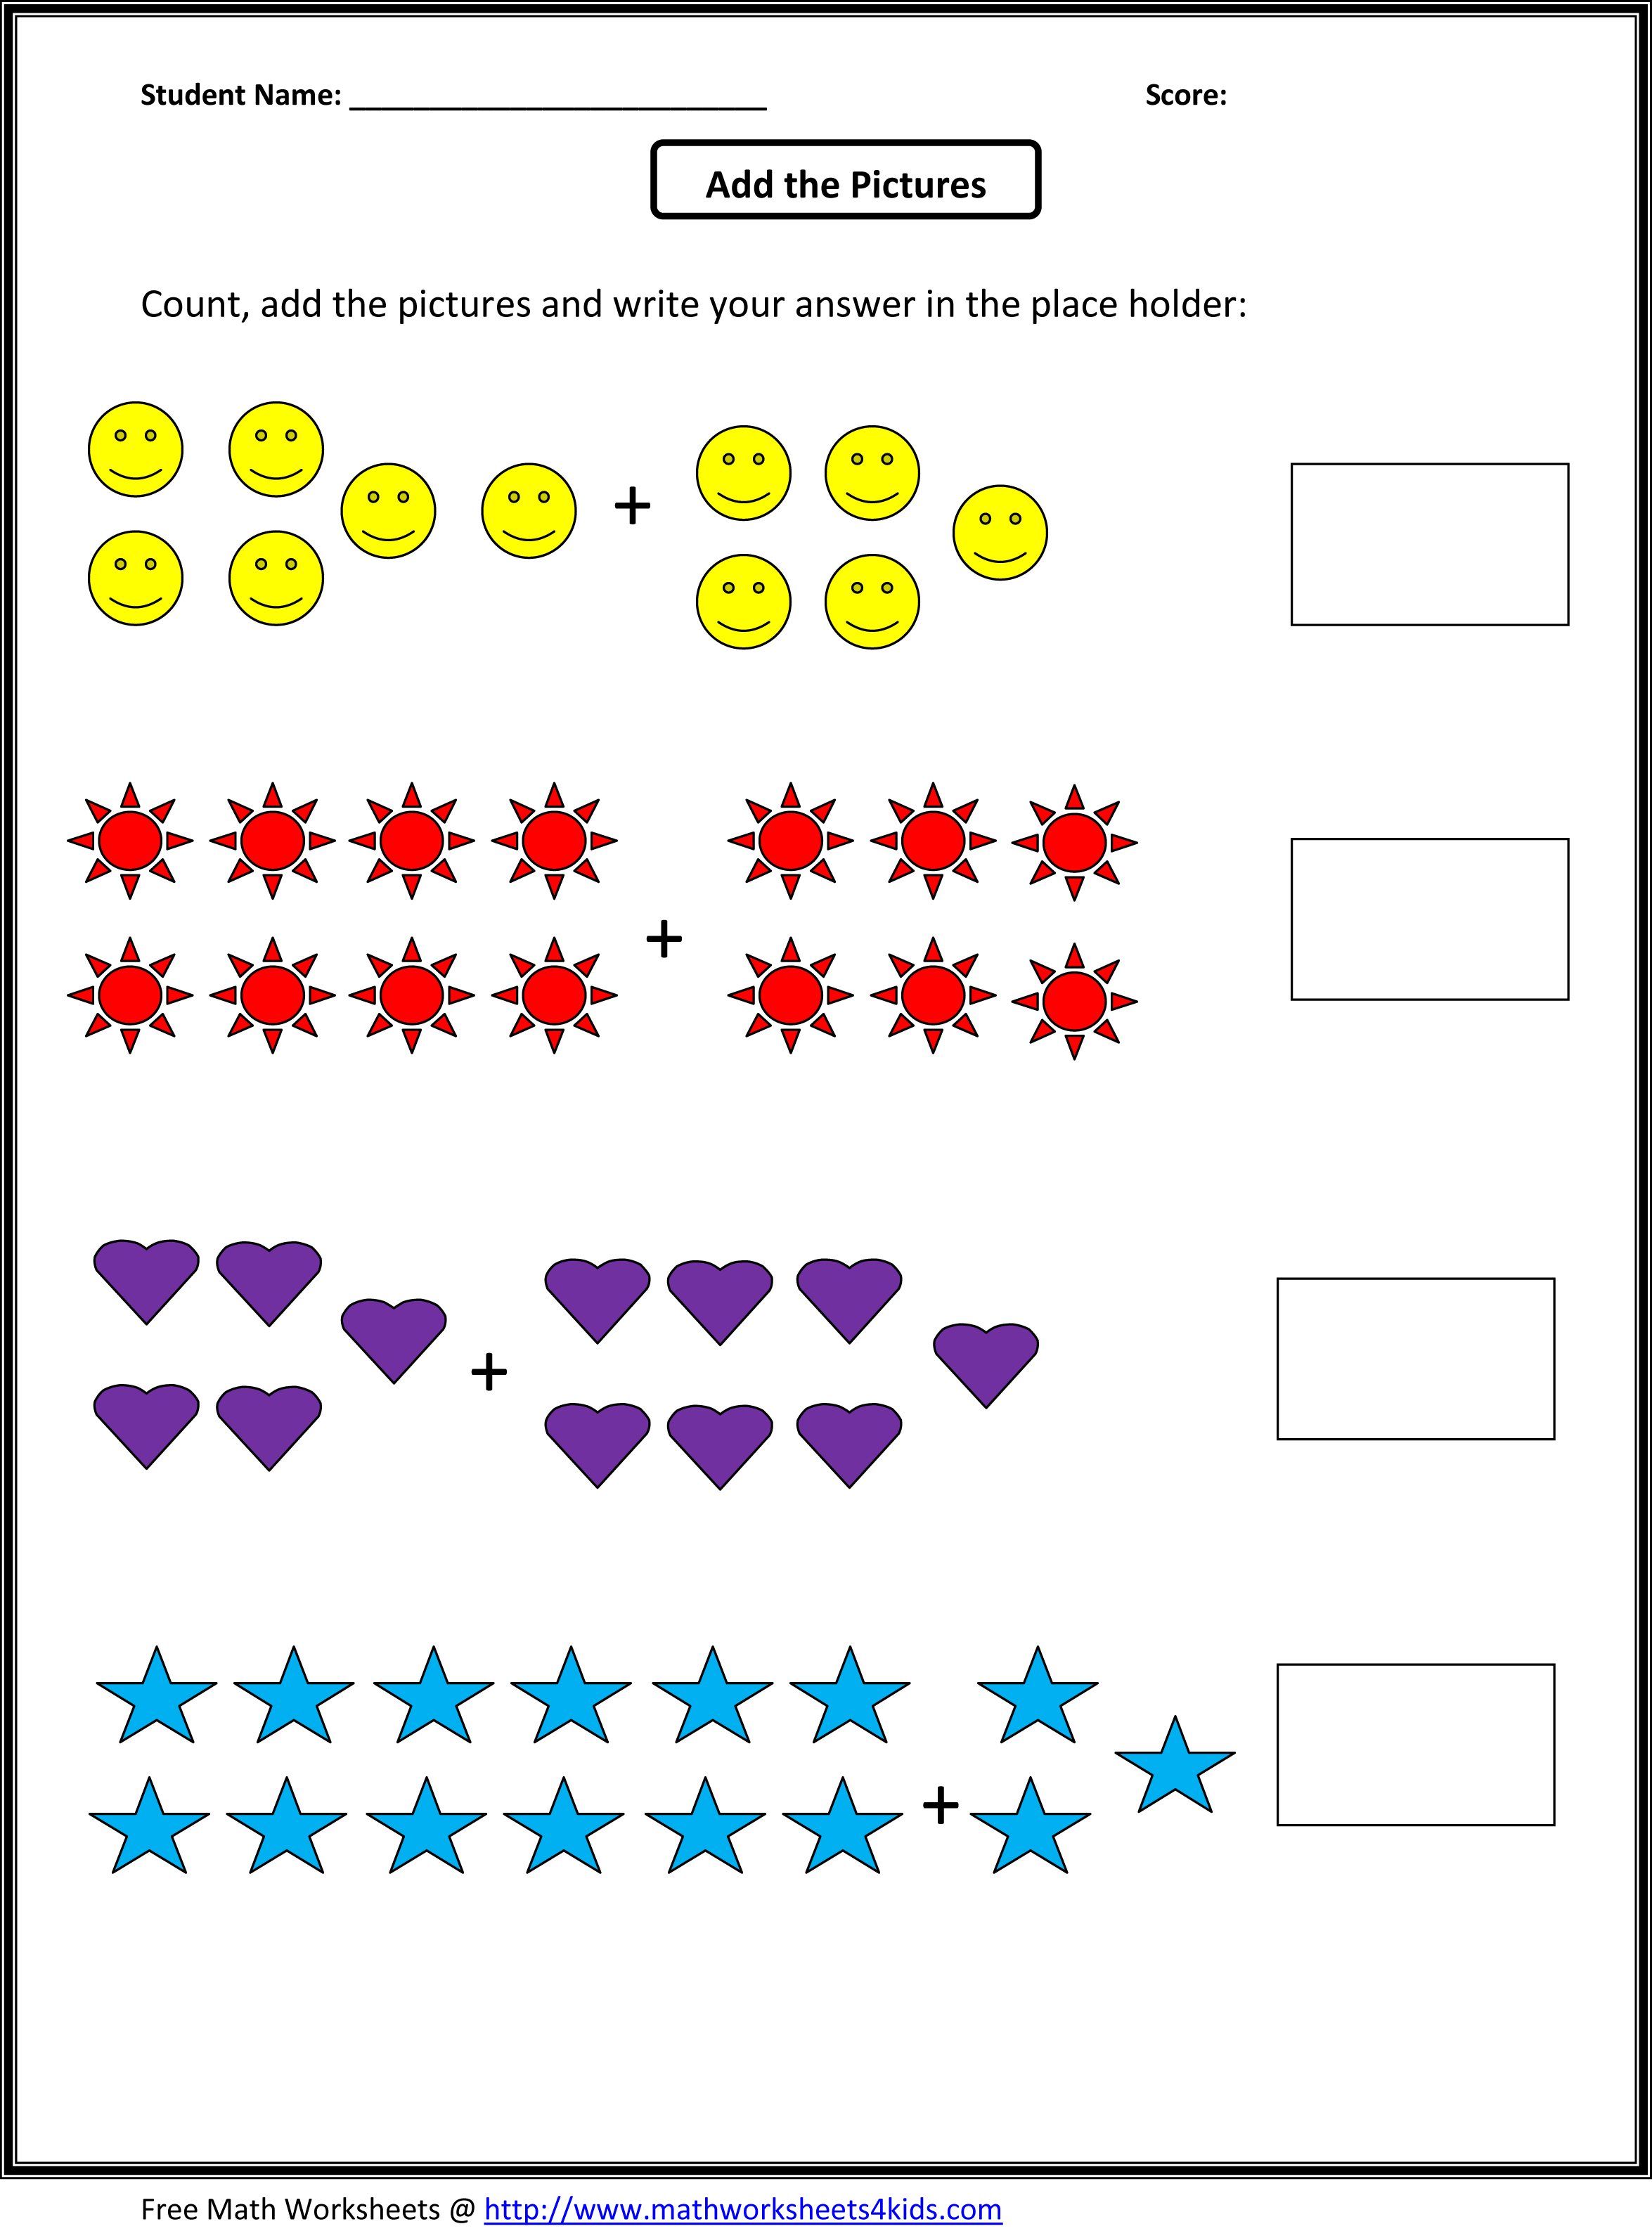 Weirdmailus  Terrific Grade  Maths Worksheet  Reocurent With Exquisite Math Worksheets For St Grade Free  Reocurent With Beautiful Free Tangram Worksheets Also Adding One Worksheets In Addition Ratio Worksheets Ks And Capital Letters Cursive Writing Worksheets As Well As Contractions Matching Worksheet Additionally Year  Math Worksheets From Reocurentcom With Weirdmailus  Exquisite Grade  Maths Worksheet  Reocurent With Beautiful Math Worksheets For St Grade Free  Reocurent And Terrific Free Tangram Worksheets Also Adding One Worksheets In Addition Ratio Worksheets Ks From Reocurentcom